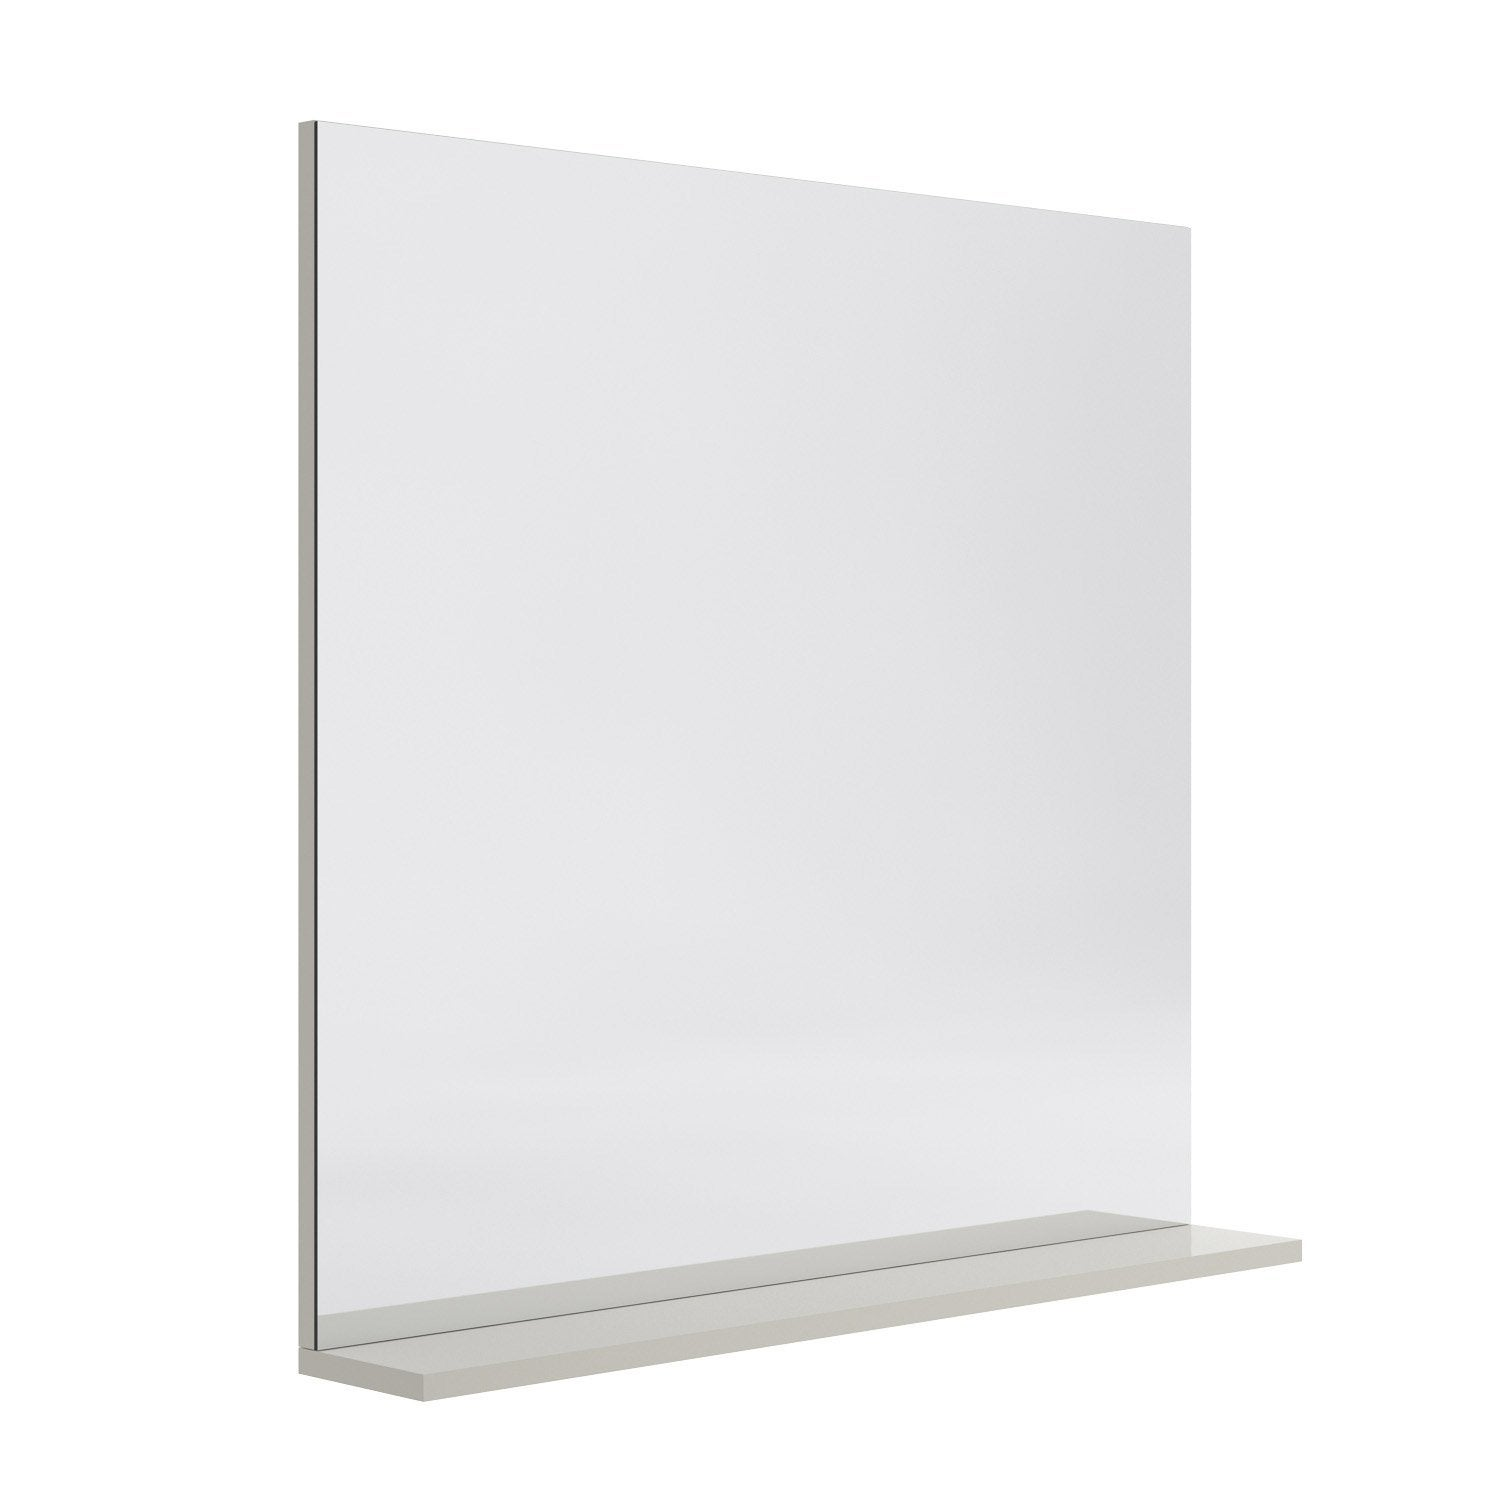 Miroir avec tablette cm opale leroy merlin for Miroir tablette